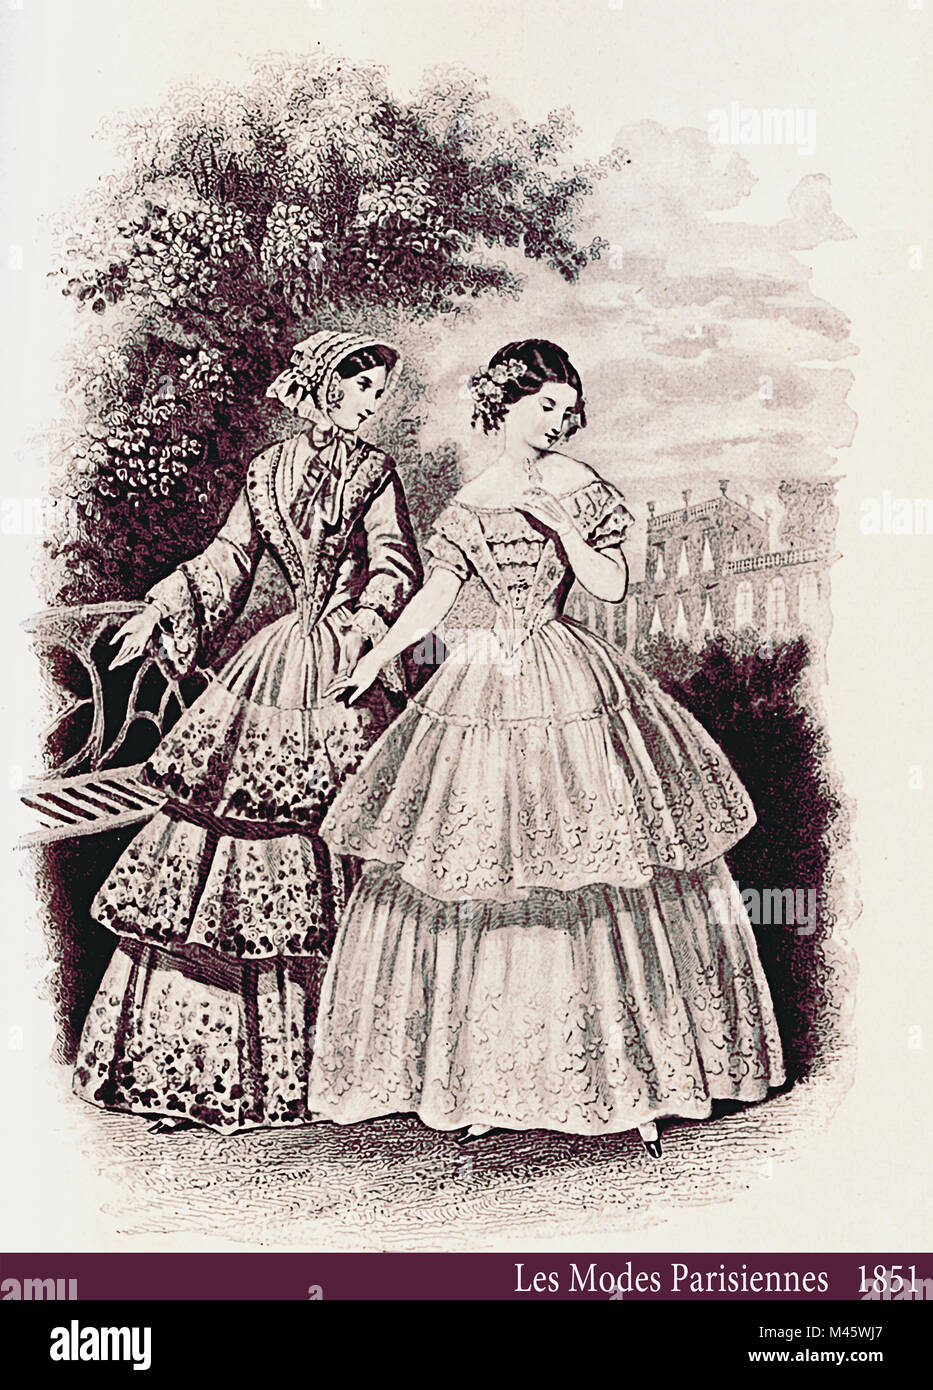 1851 vintage fashion, French magazine Les Modes Parisiennes presents two ladies walking leisurely outdoor in a beautiful - Stock Image